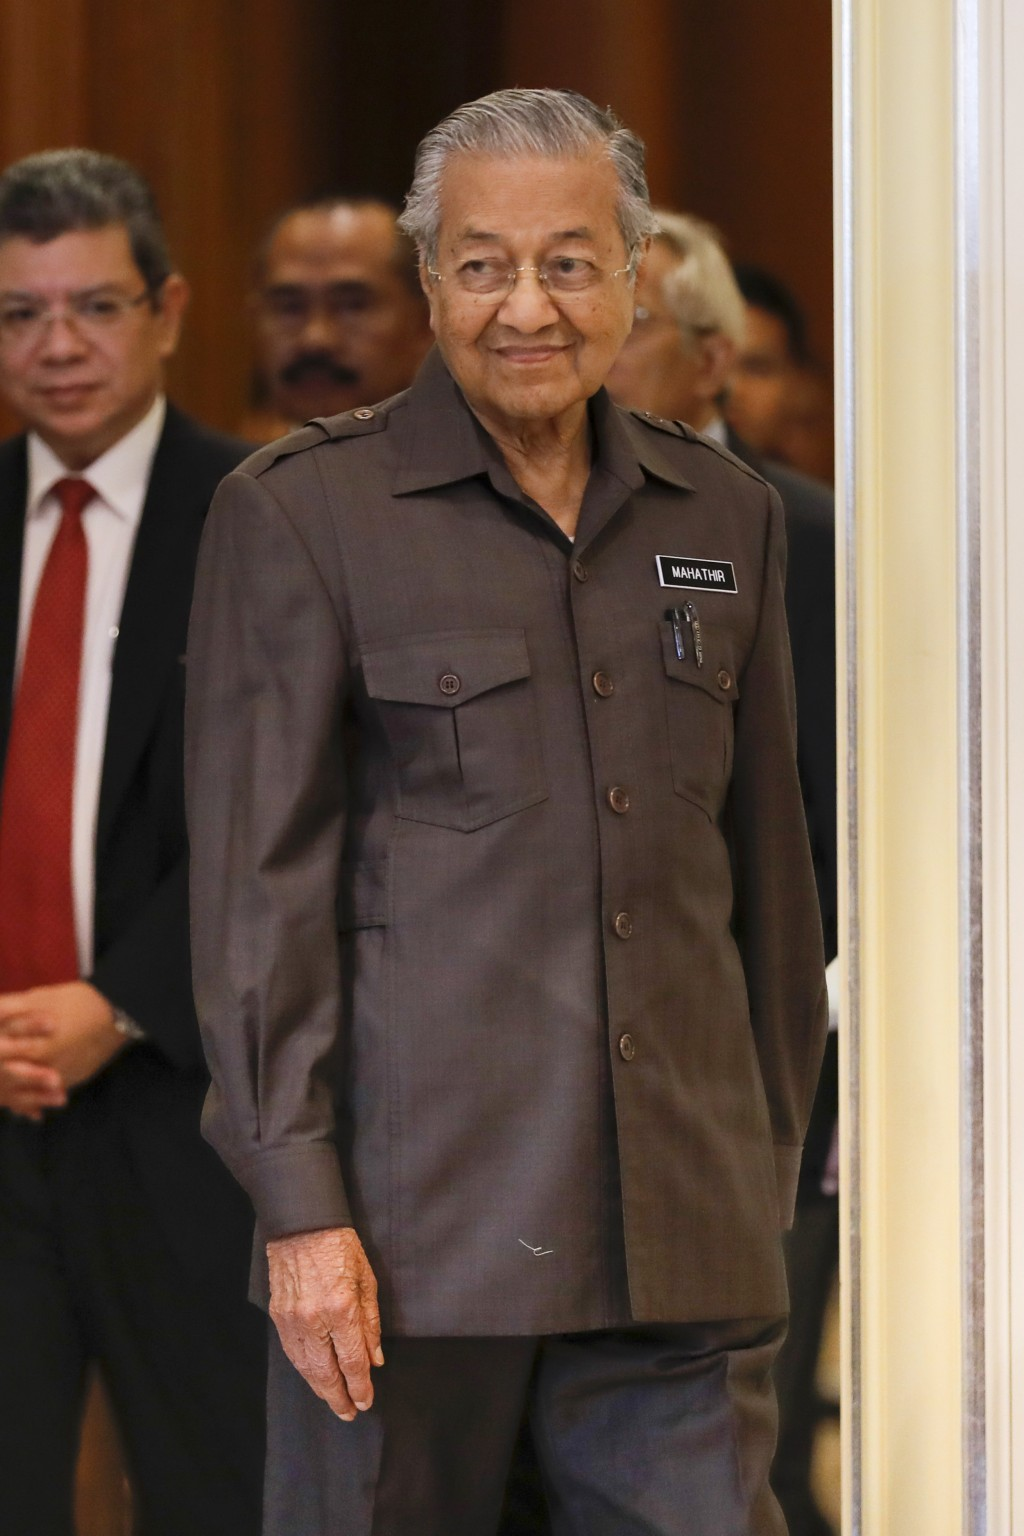 Malaysian Prime Minister Mahathir Mohamad arrives for a press conference in Putrajaya, Malaysia, Monday, April 15, 2019. Malaysia's government decided